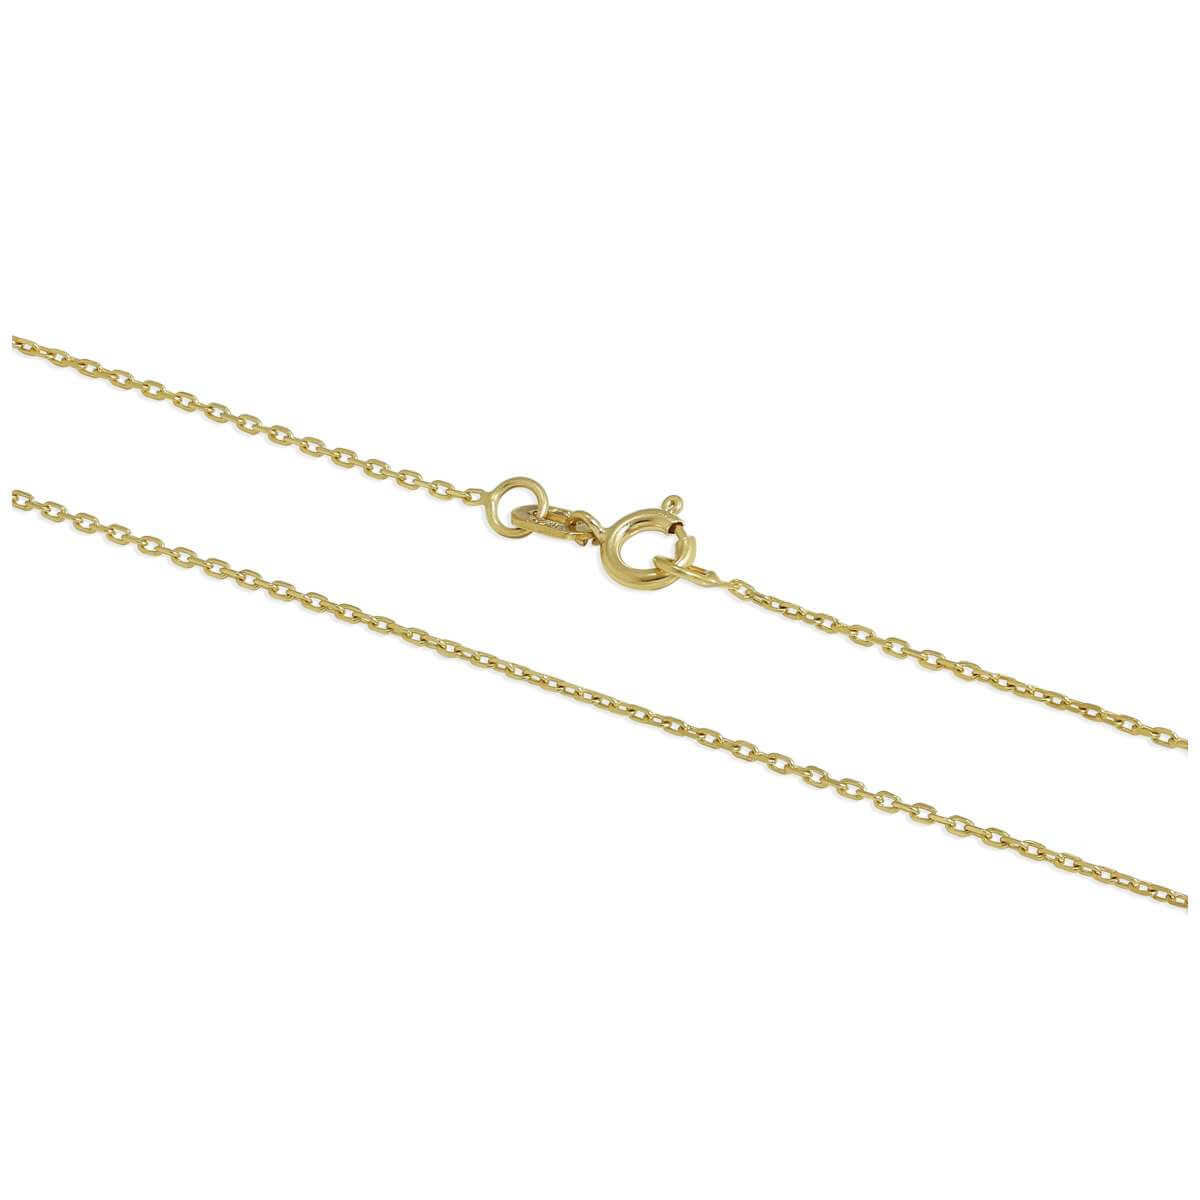 9ct Gold Faceted Trace Chain 16 - 22 Inches